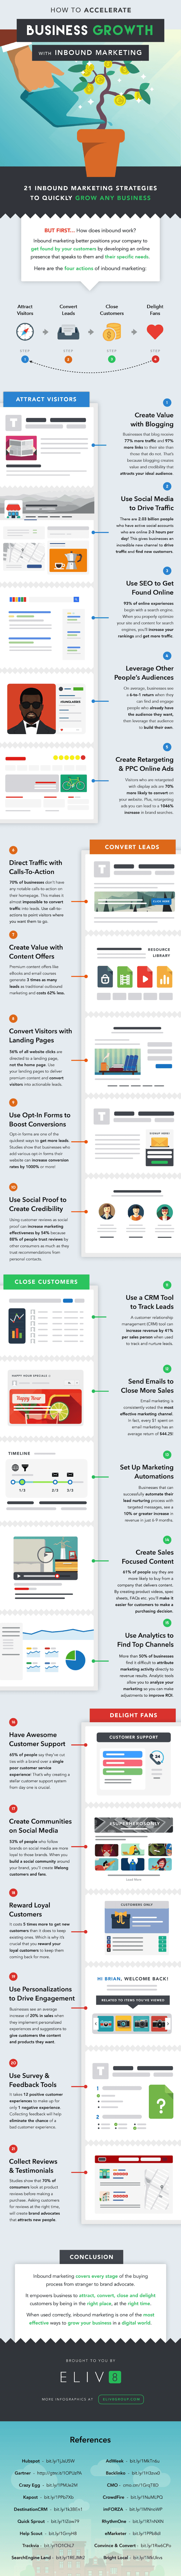 21 Inbound Marketing Growth Strategies for Your Business Infographic Image